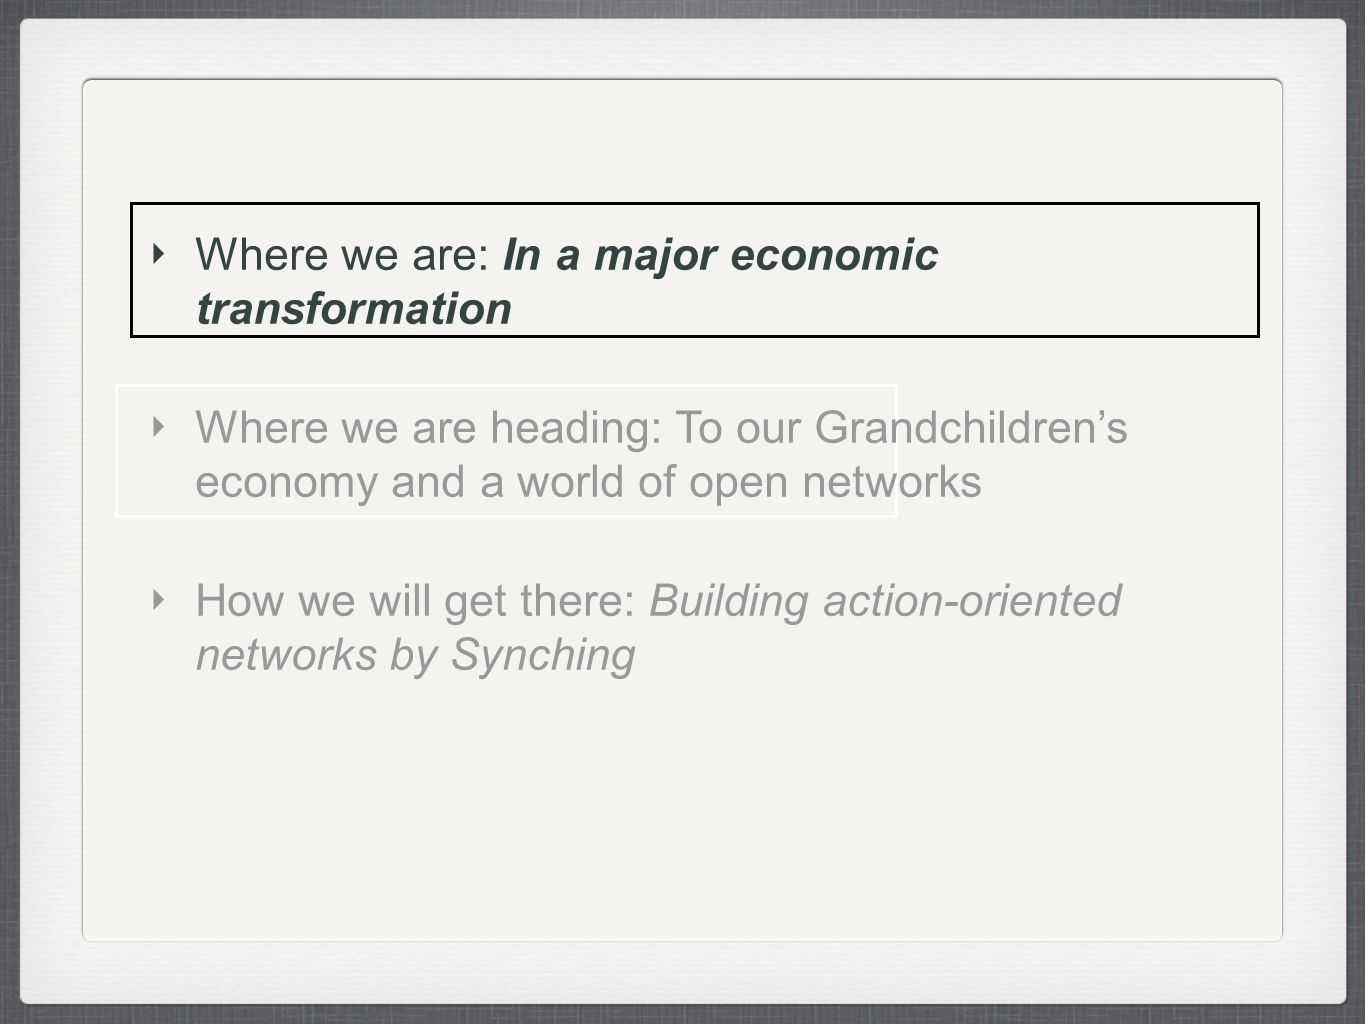 Where we are: In a major economic transformation Where we are heading: To our Grandchildrens economy and a world of open networks How we will get there: Building action-oriented networks by Synching